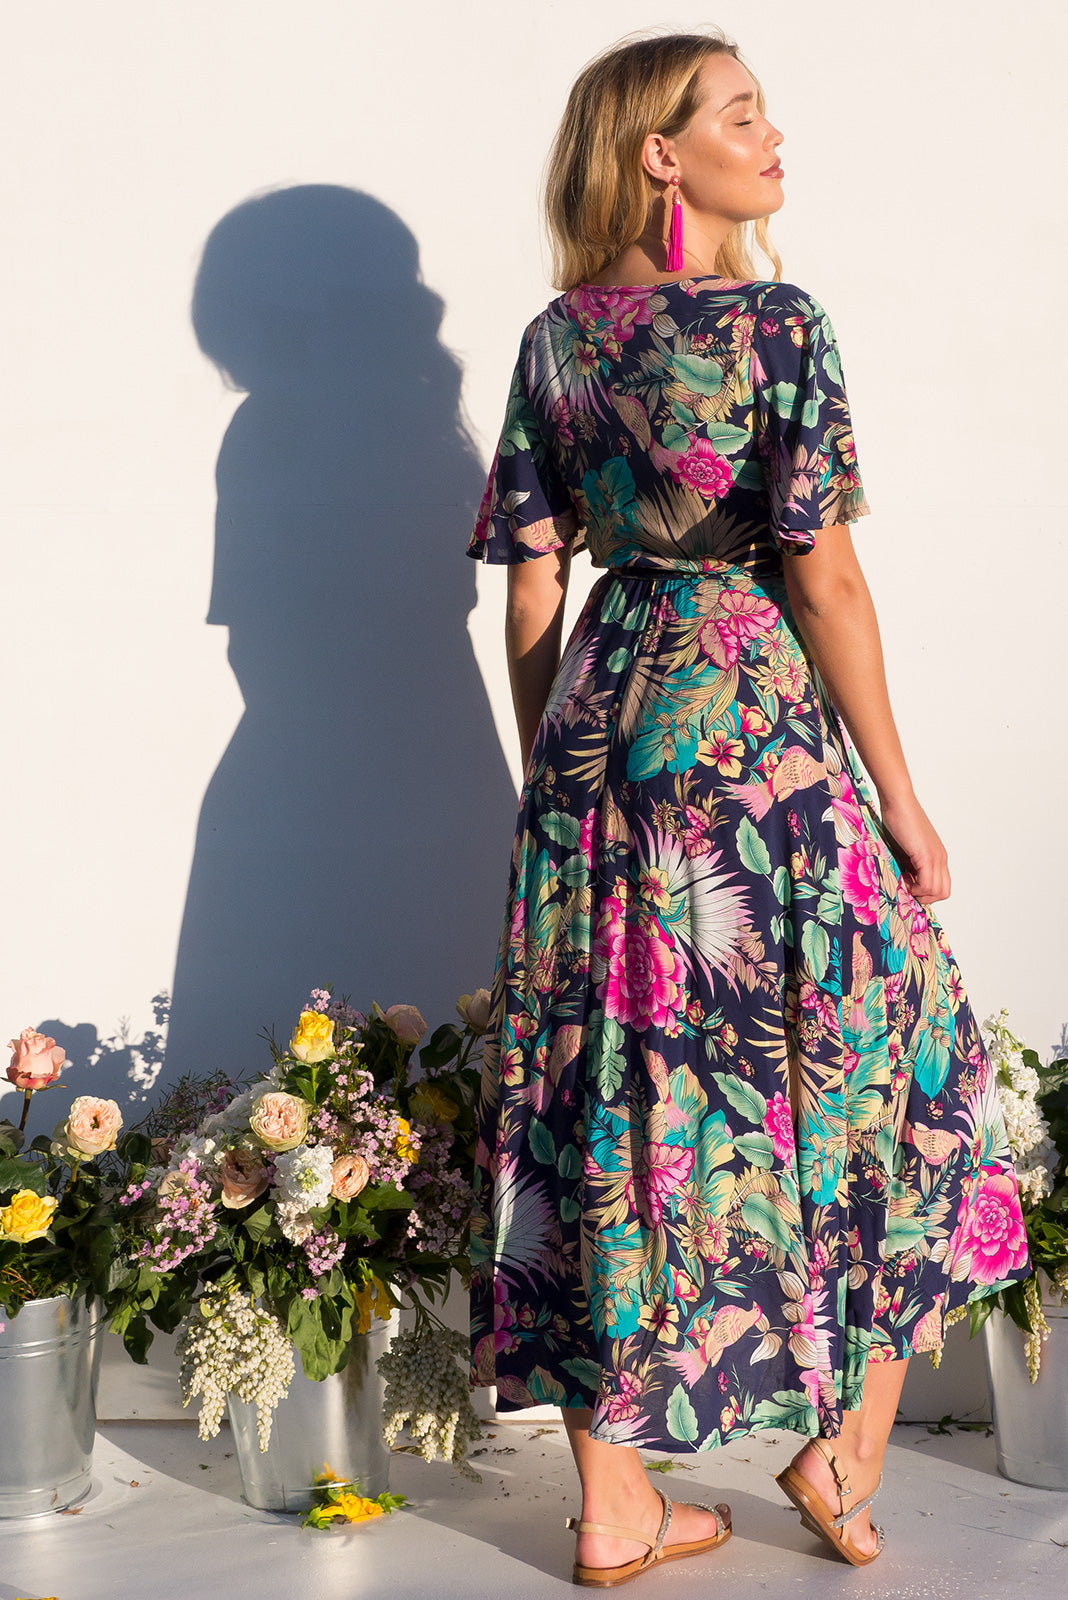 Petal Bird of Paradise Maxi Wrap dress with flutter sleeves in a vibrant navy and brightly coloured tropical print plus size dress